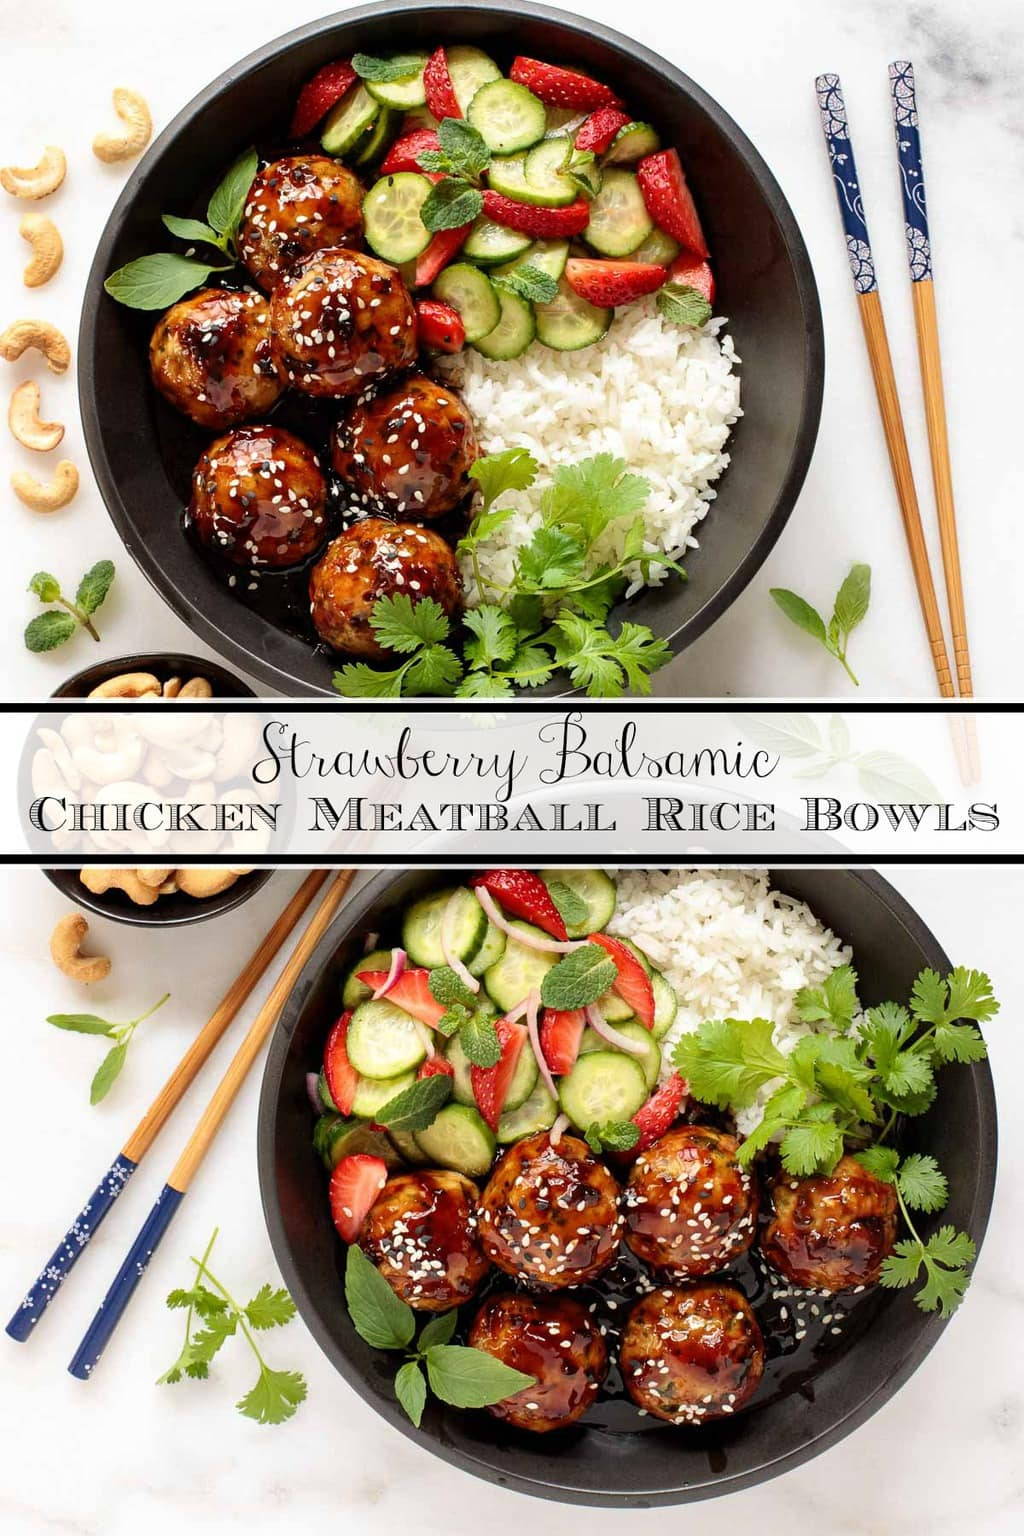 With a delicious sweet and spicy sauce and a bright, fresh strawberry-cucumber salad, these Chicken Meatball Rice Bowls make a healthy, beautiful meal! #asianricebowl, #chickenmeatballs, #asianchickenmeatballs, #easyasianricebowl, #healthychickenricebowl